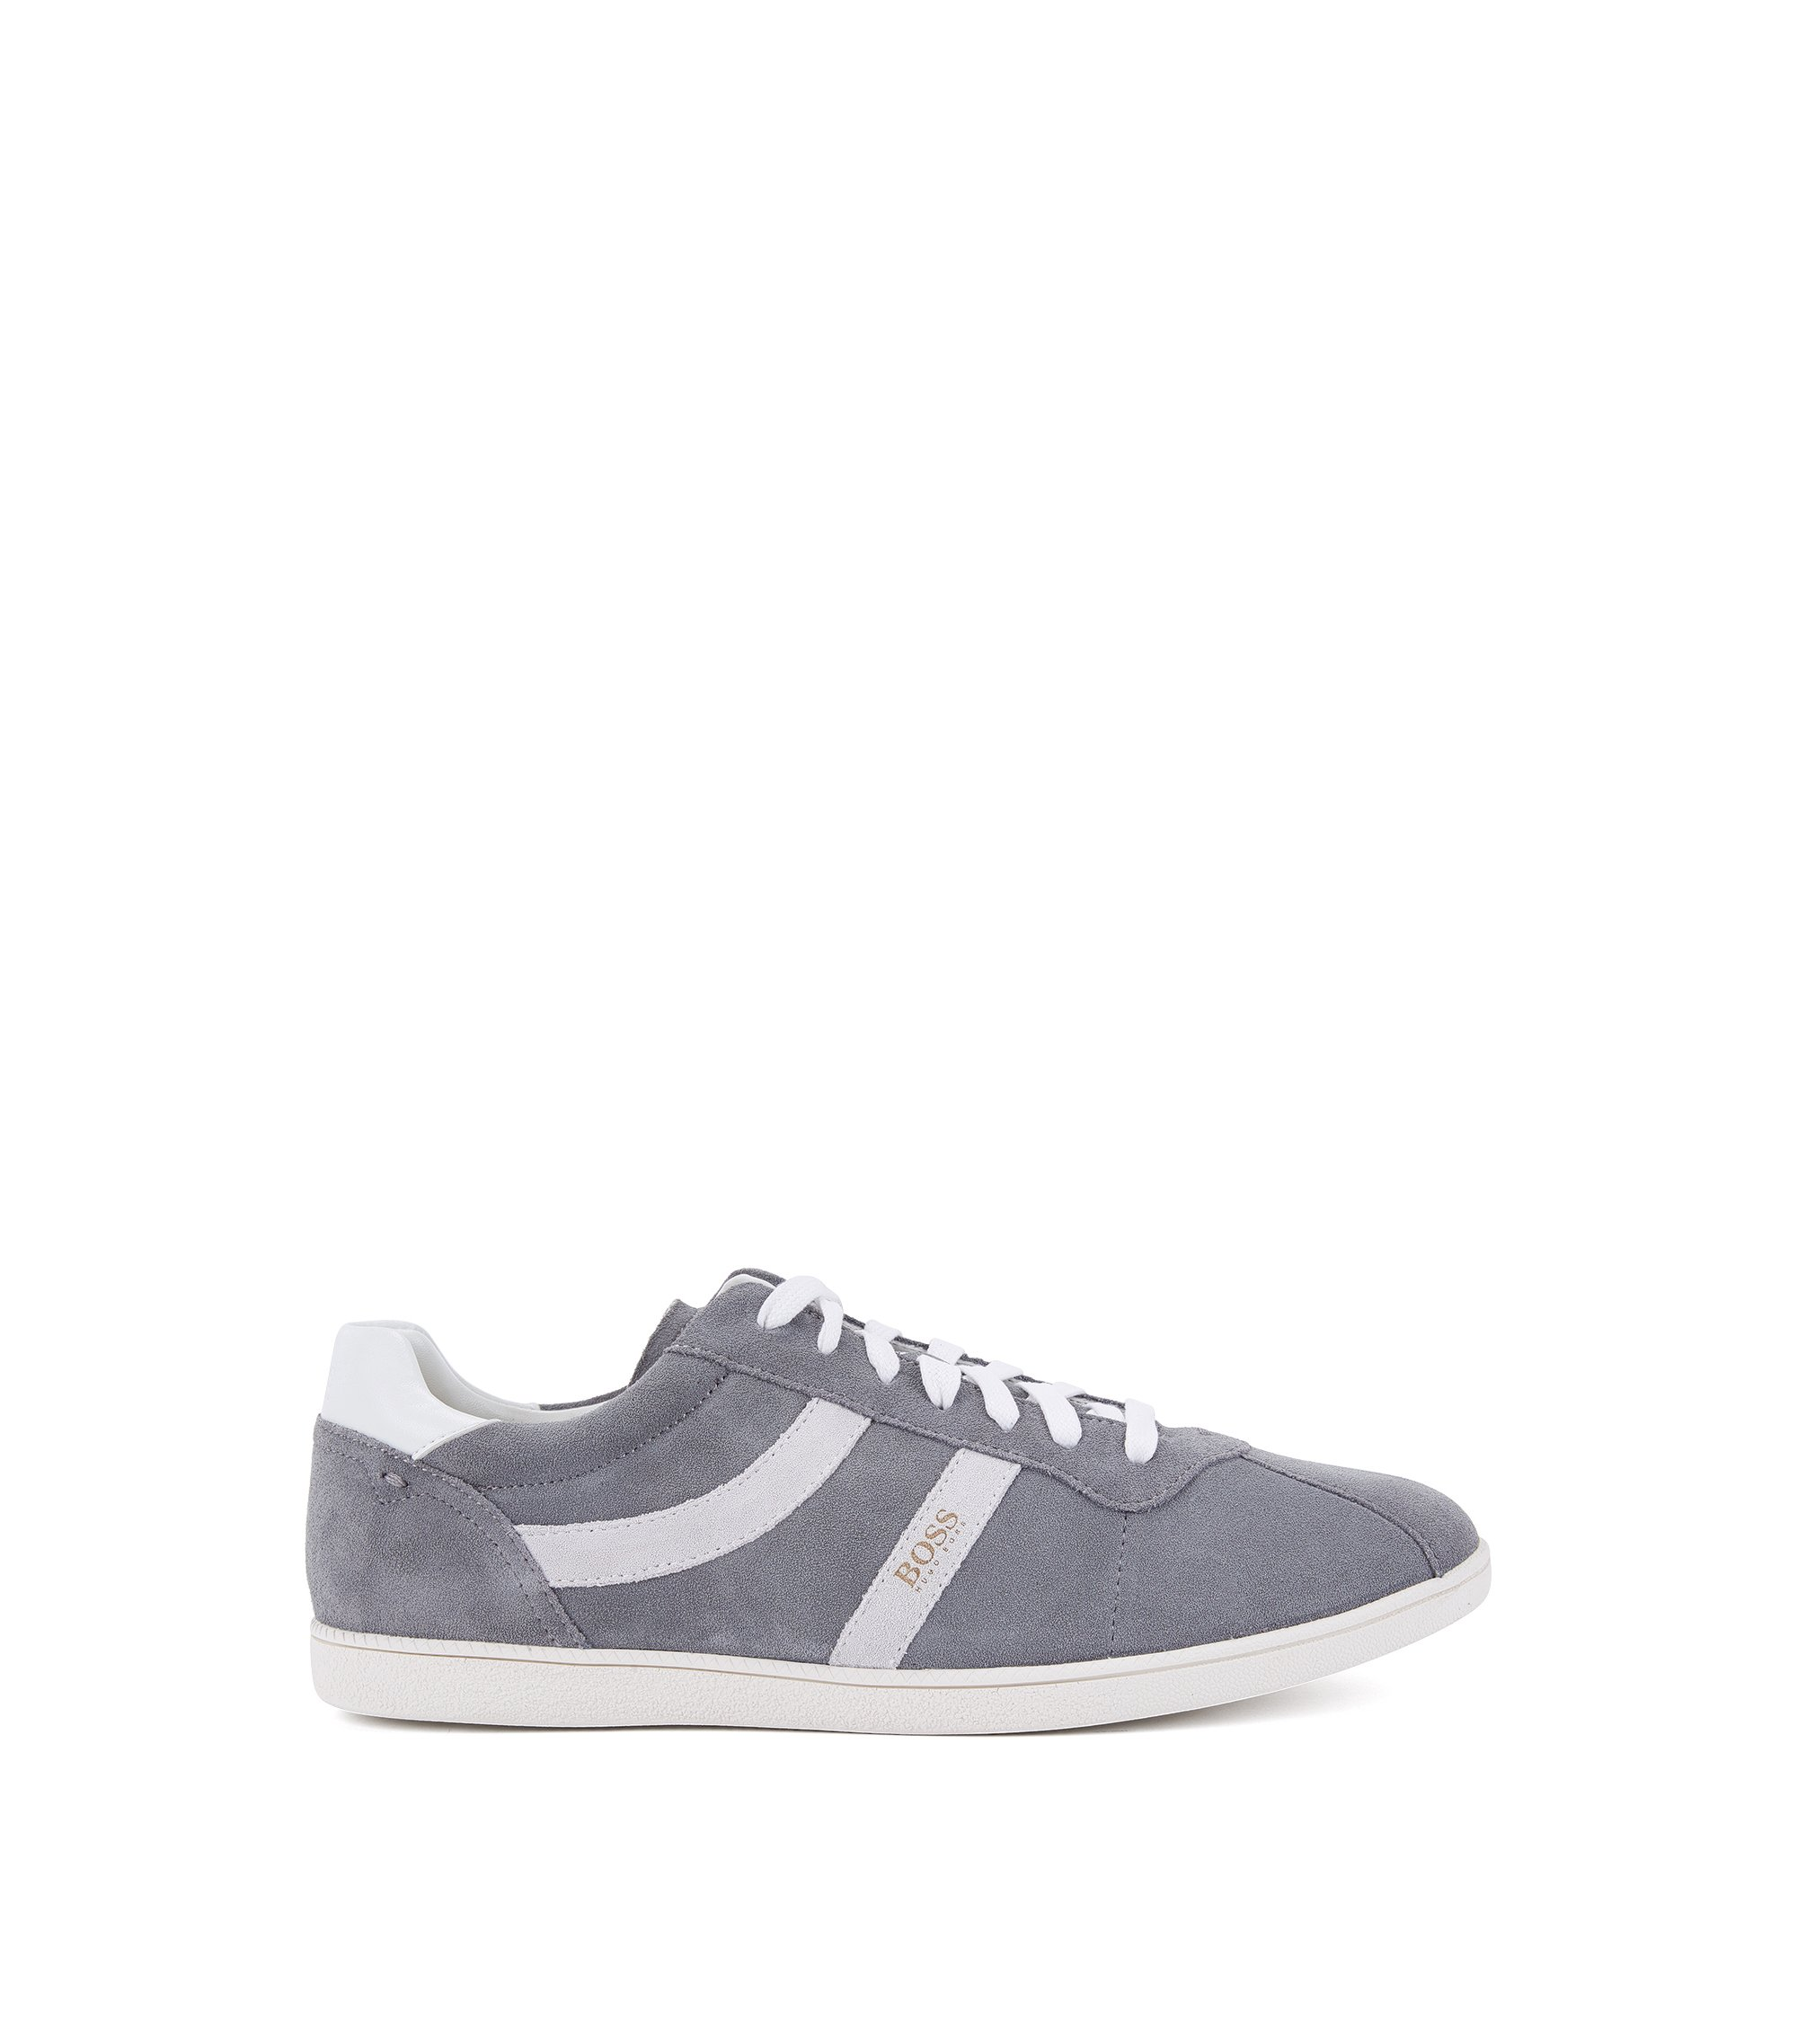 Suede Sneaker | Rumba Tenn Sd, Grey